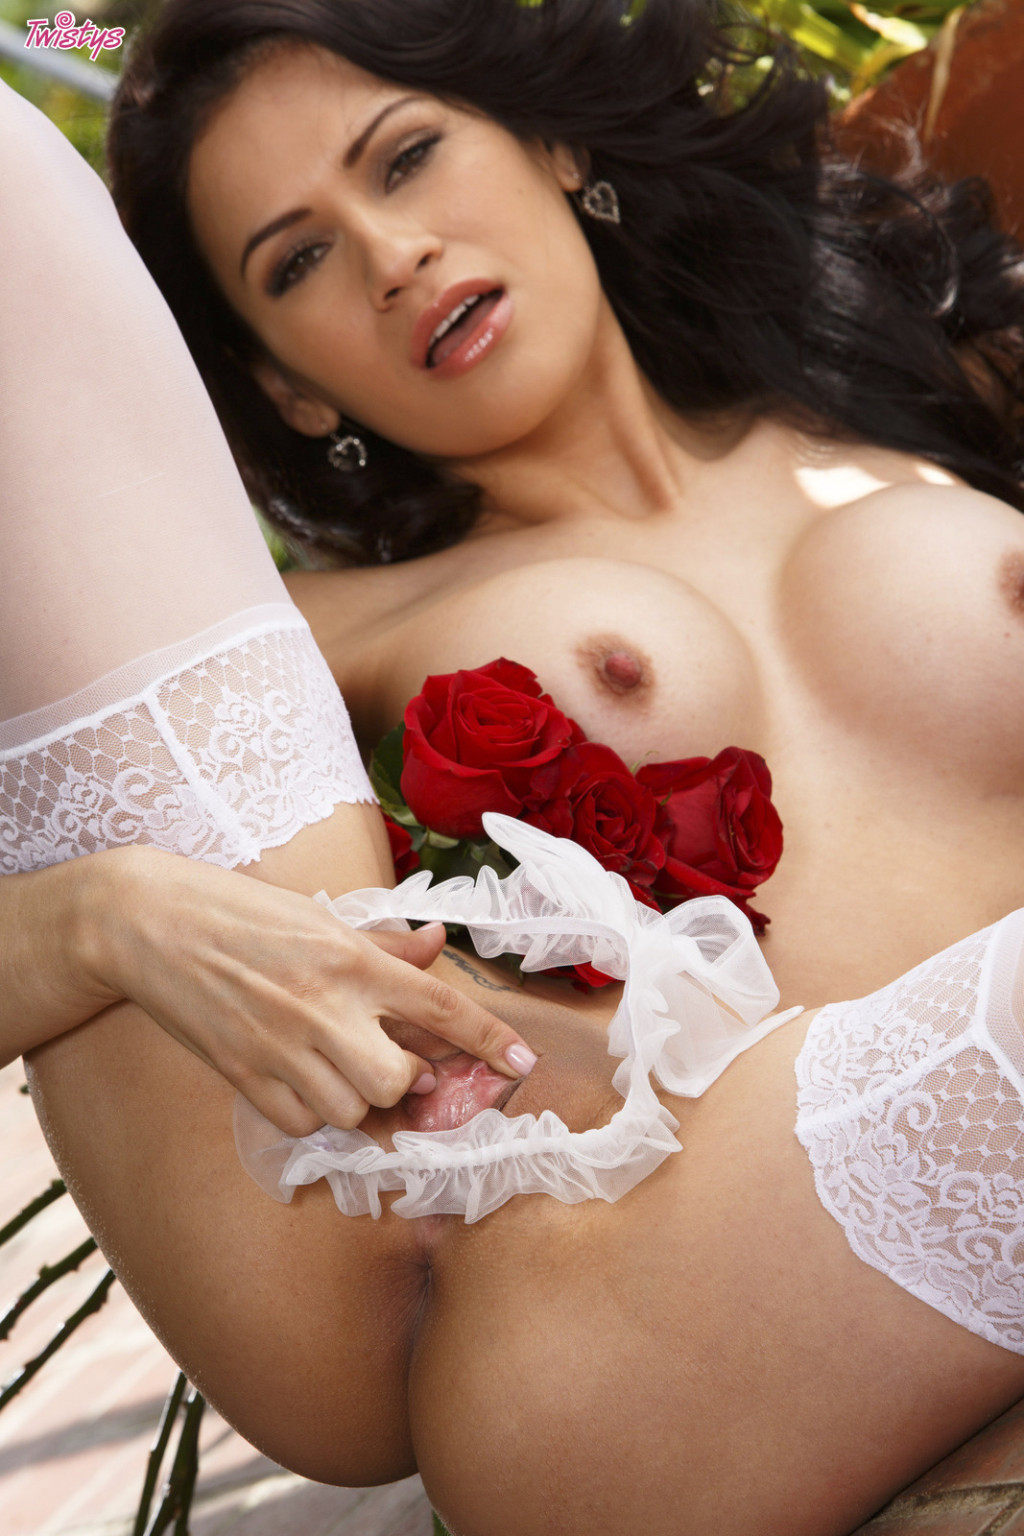 Vanessa veracruz shows off her perfect body in underclothes